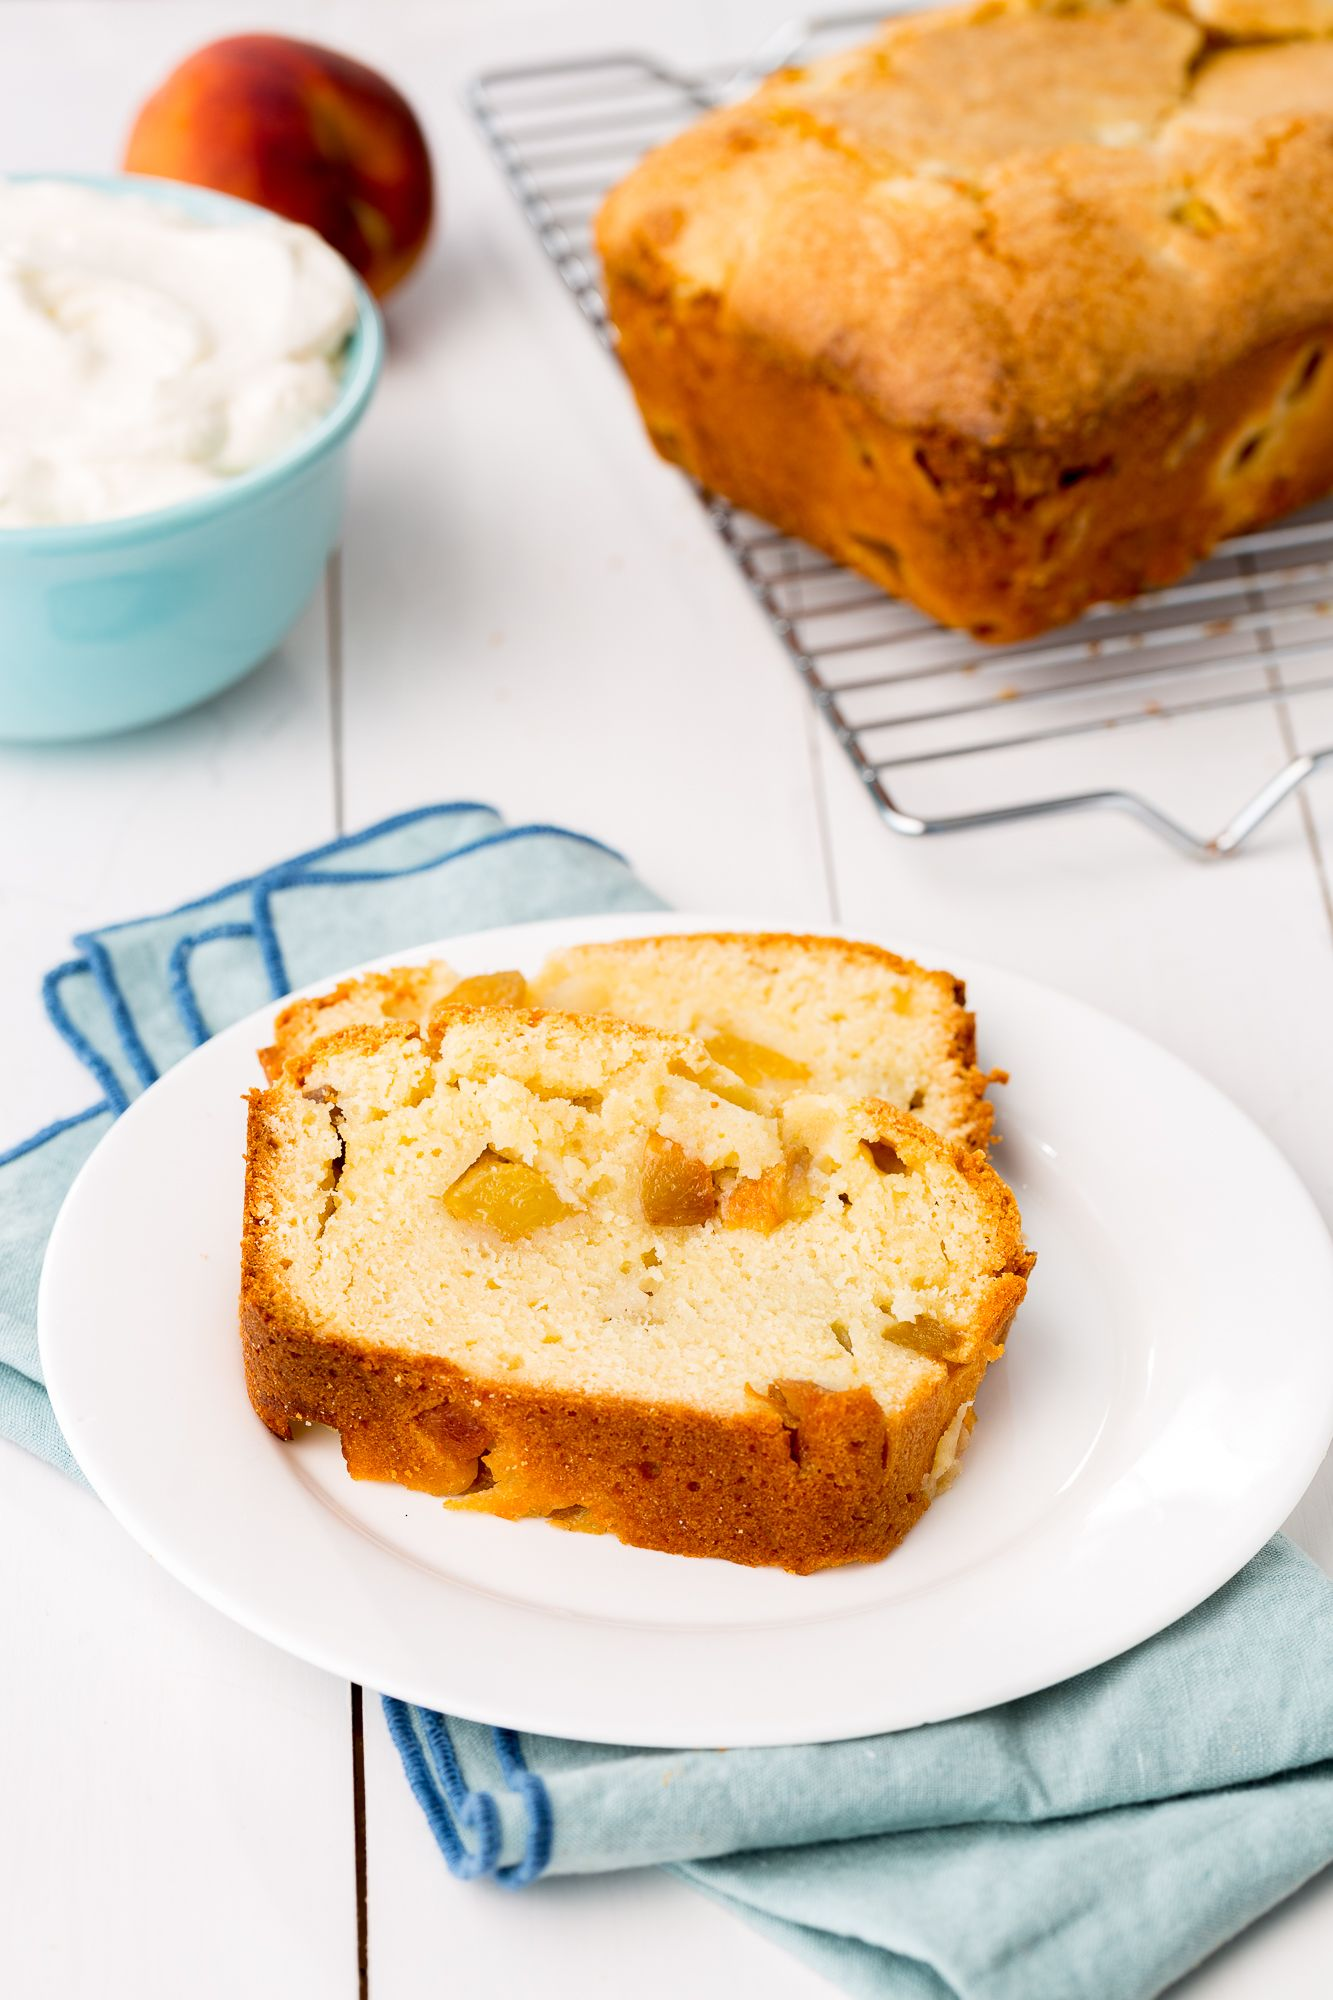 Peaches & Cream Pound Cake